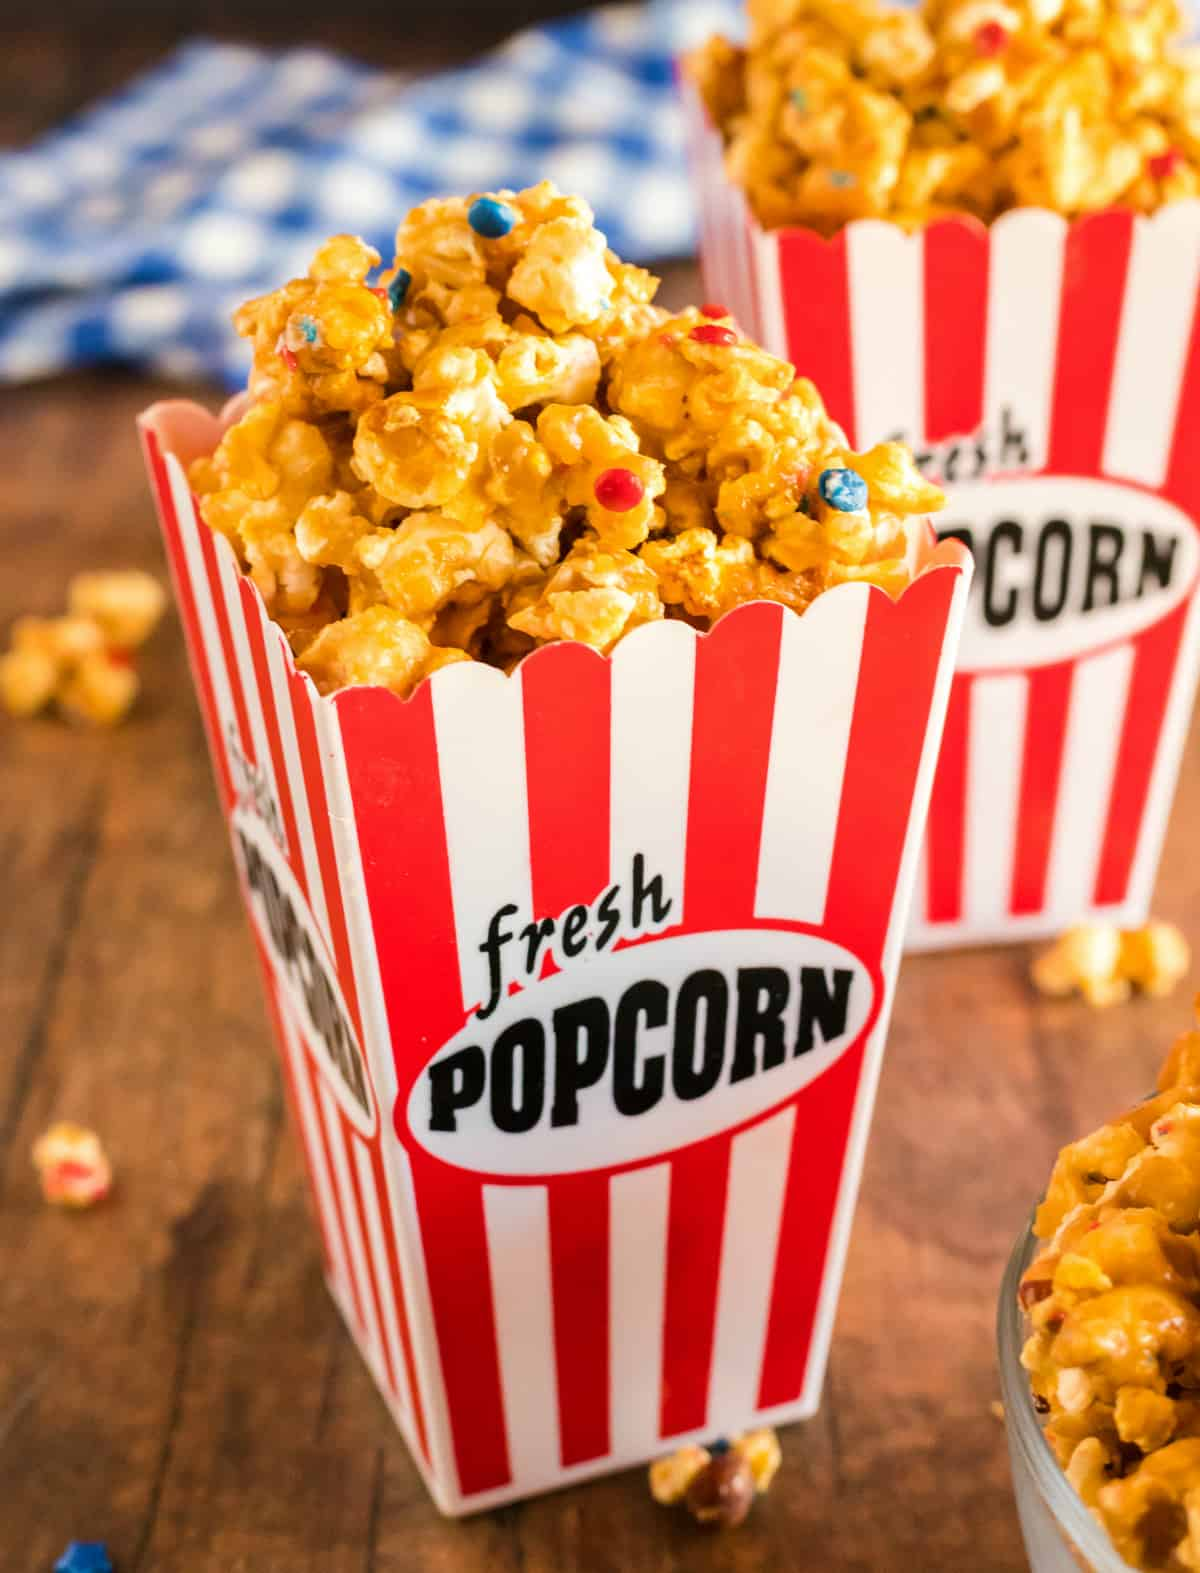 Popcorn bucked filled with White Chocolate Popcorn